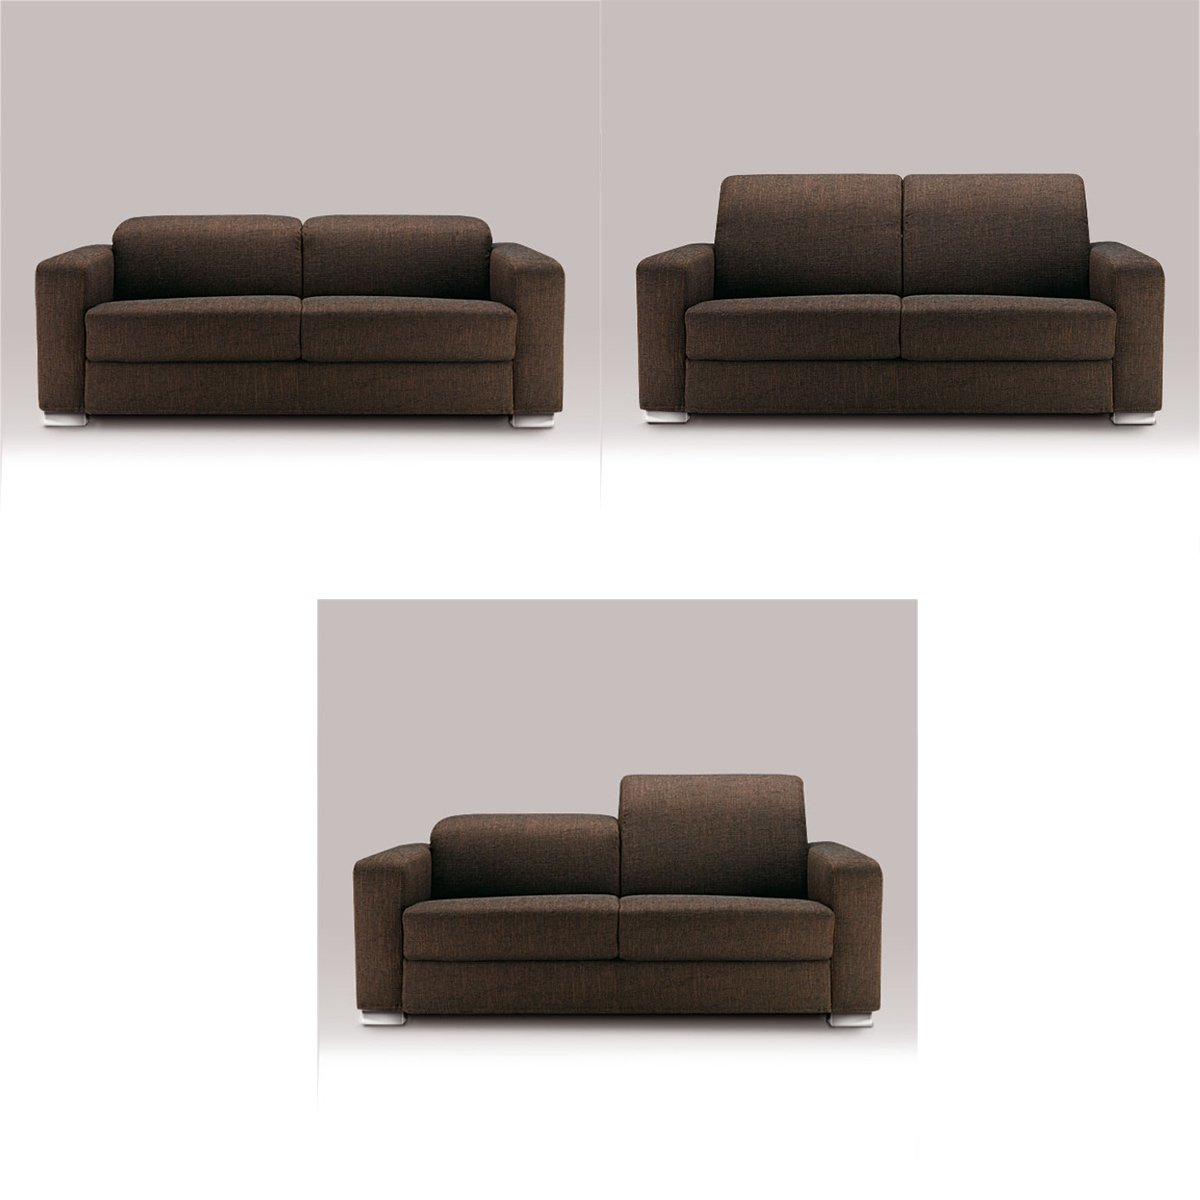 94 canape convertible couchage quotidien canape. Black Bedroom Furniture Sets. Home Design Ideas